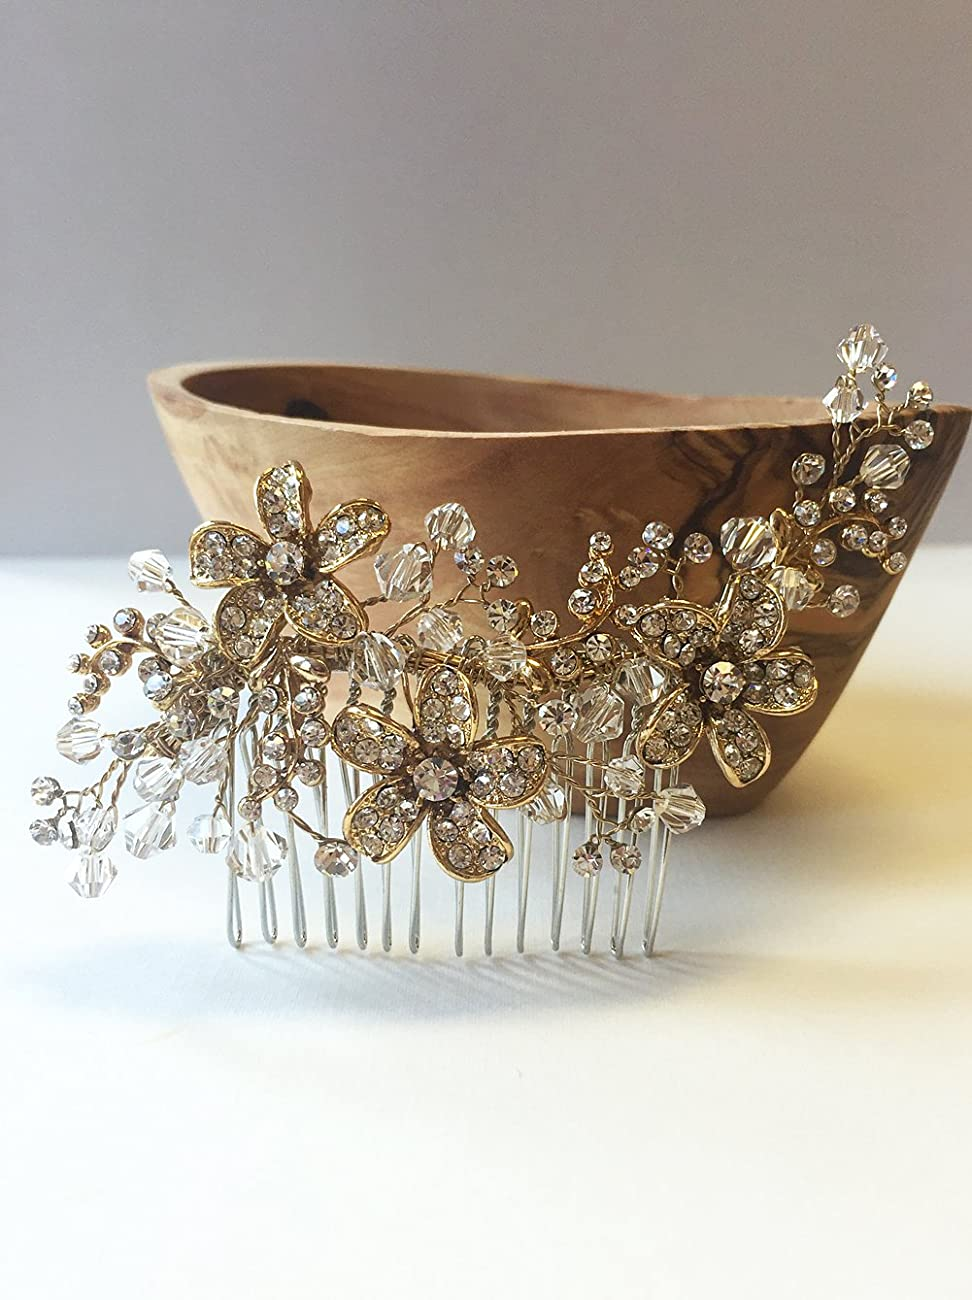 USABride Vintage Gold-Plated Rhinestone and Crystal Bridal Comb, Floral Bridal Headpiece 2239-G 1